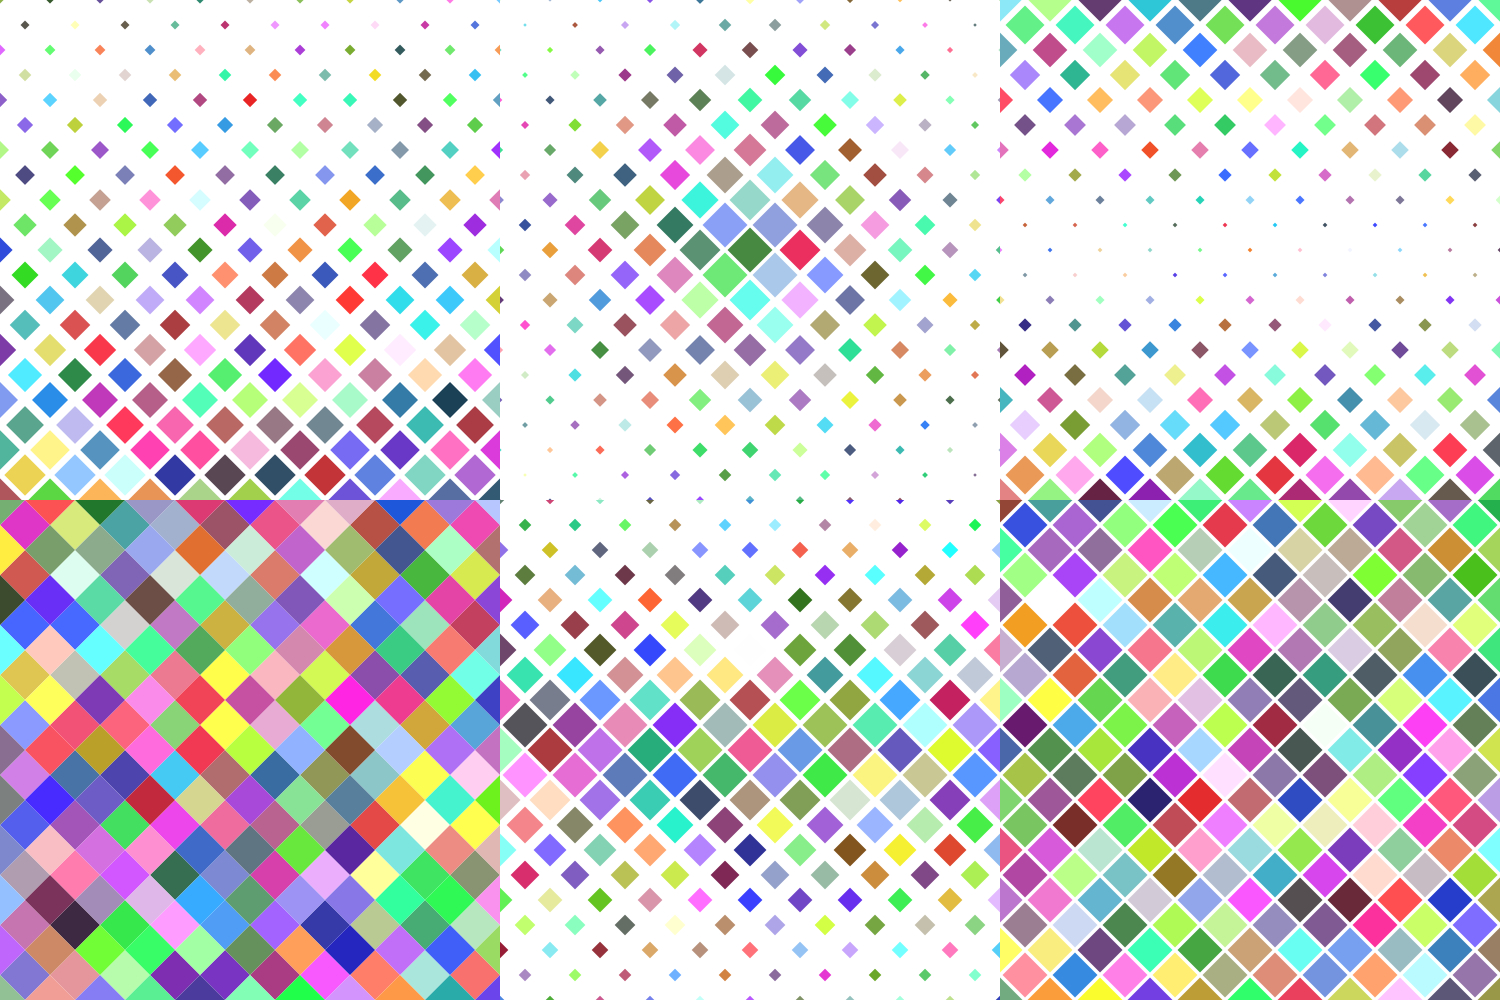 24 Multicolored Square Patterns (AI, EPS, JPG 5000x5000) example image 3